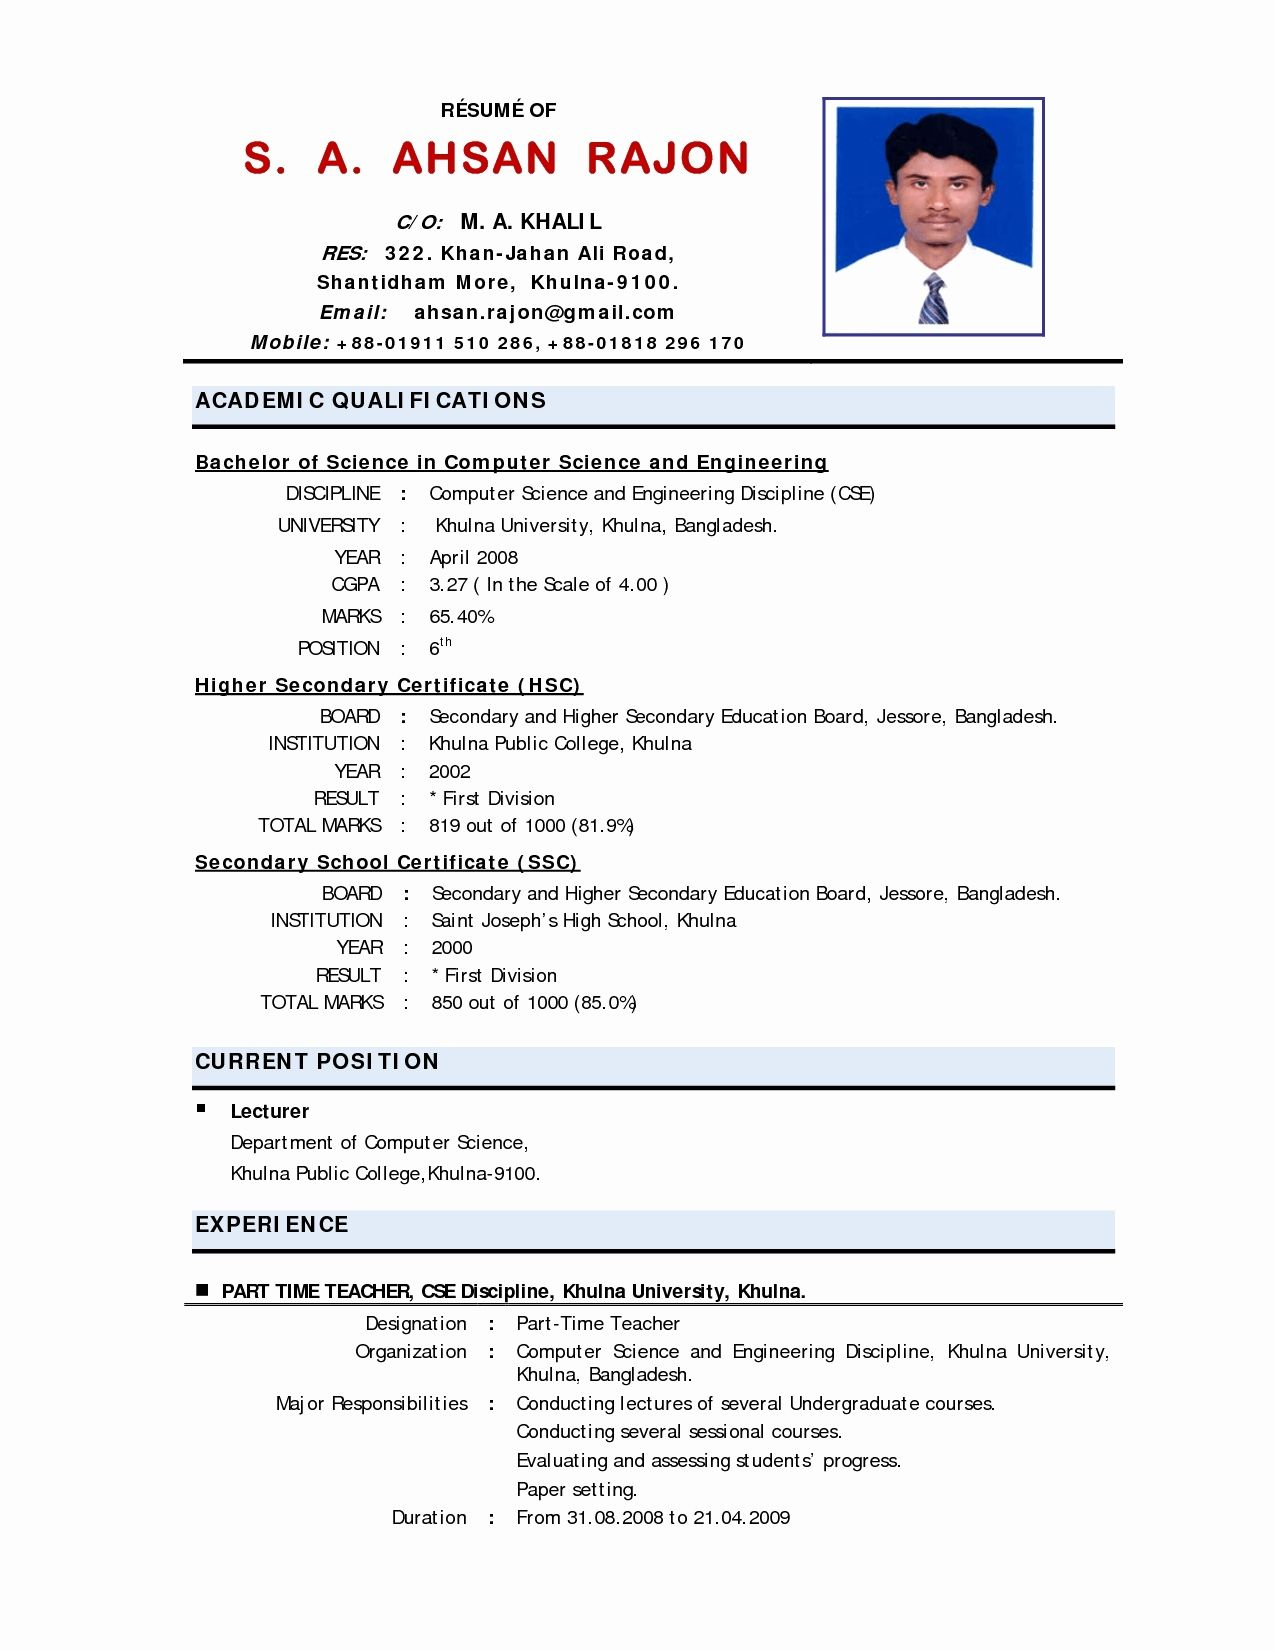 Resume Format For Accountant Freshers Resume Format Used In India 2 Resume Format Pinterest